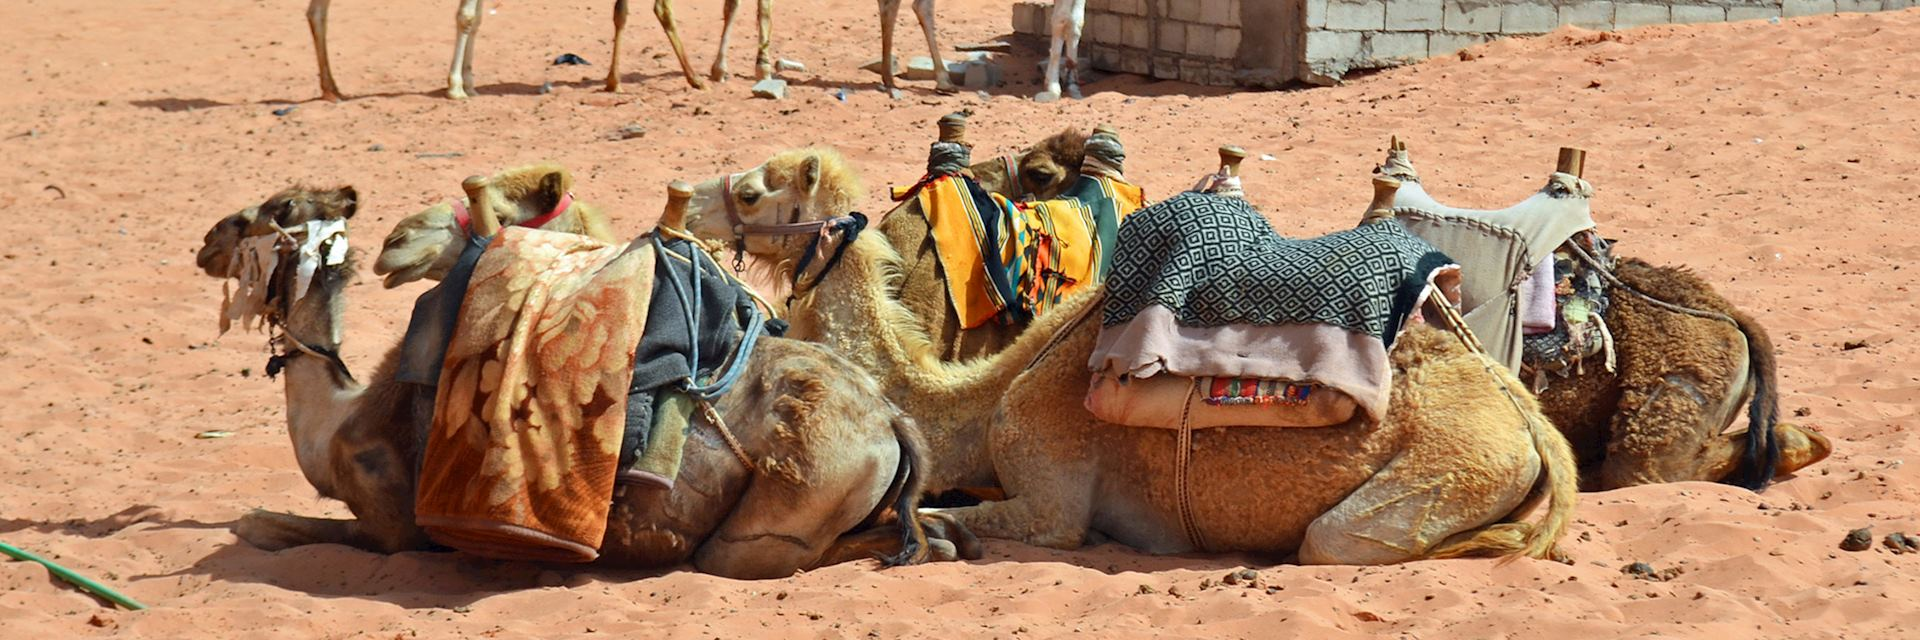 Desert transportation in Jordan